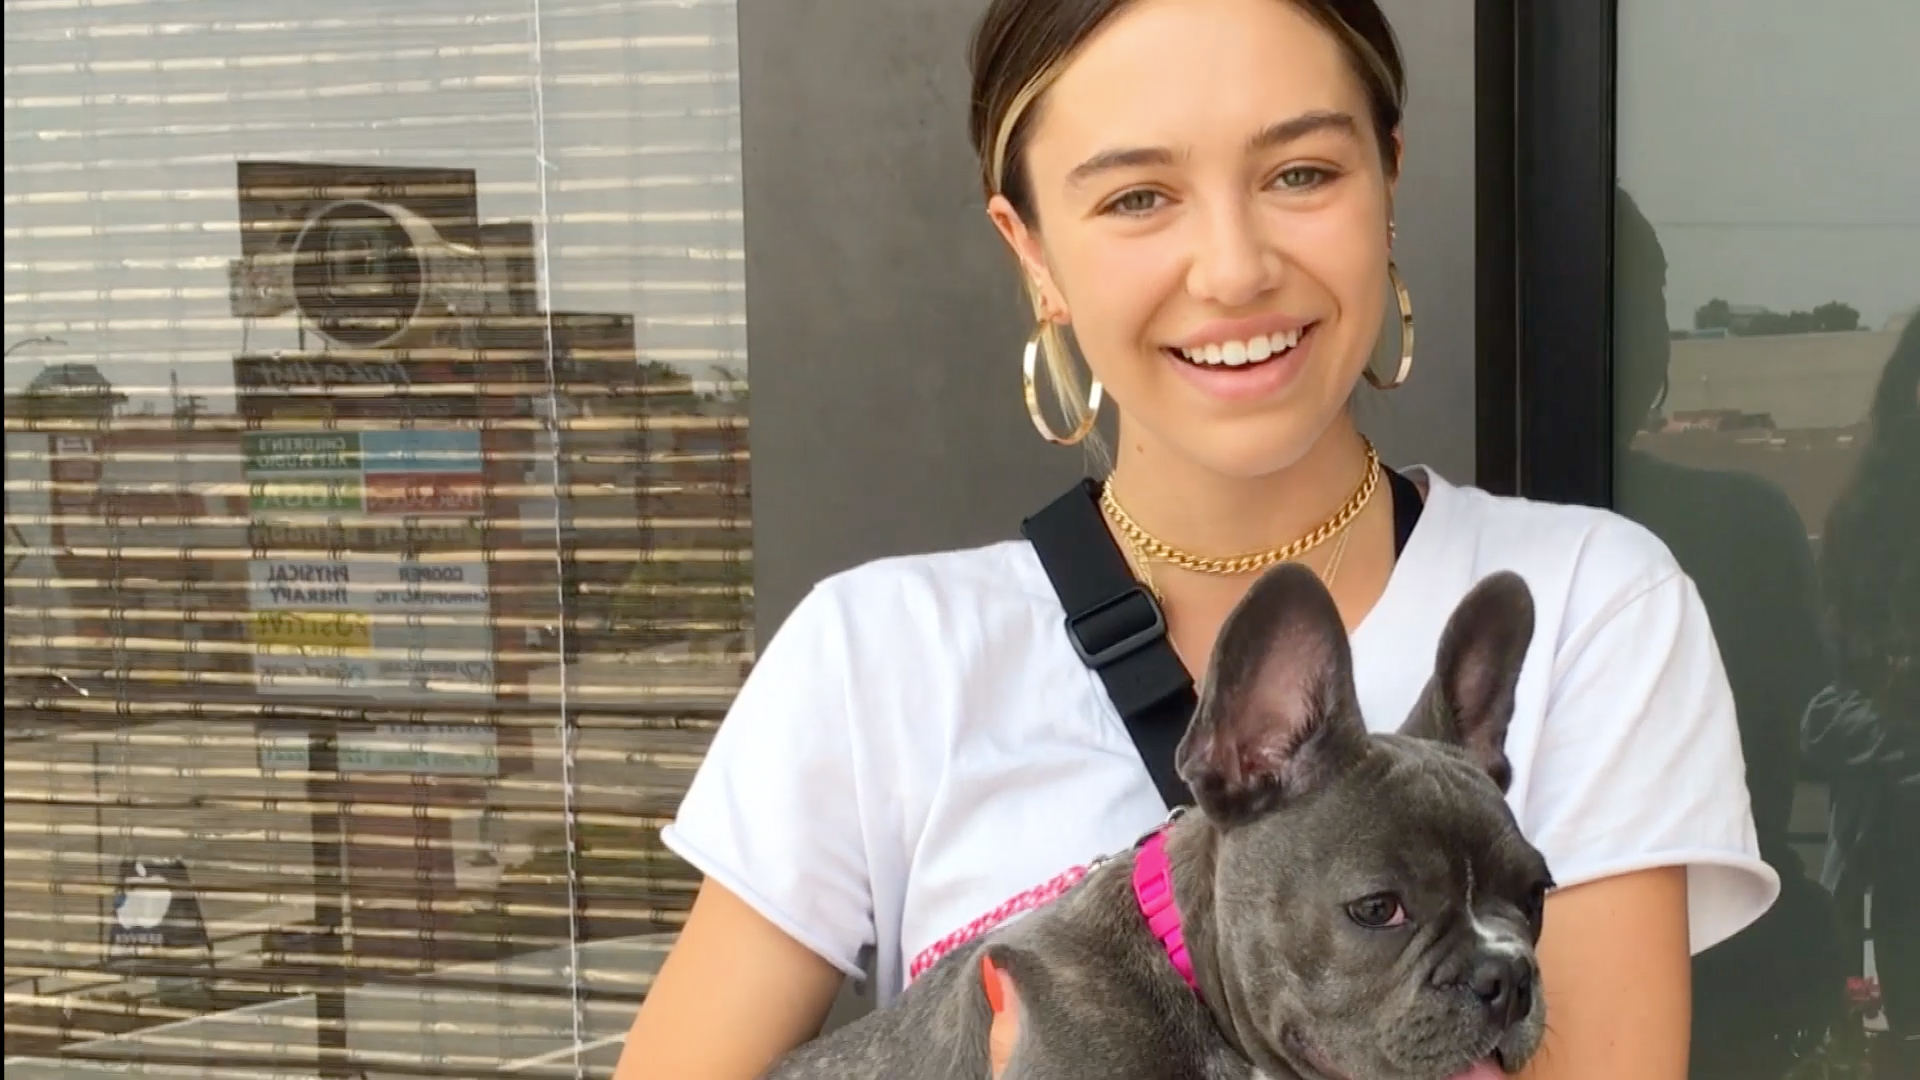 Delilah Belle Hamlin Introduces Us to Her Rescue Frenchie, Love